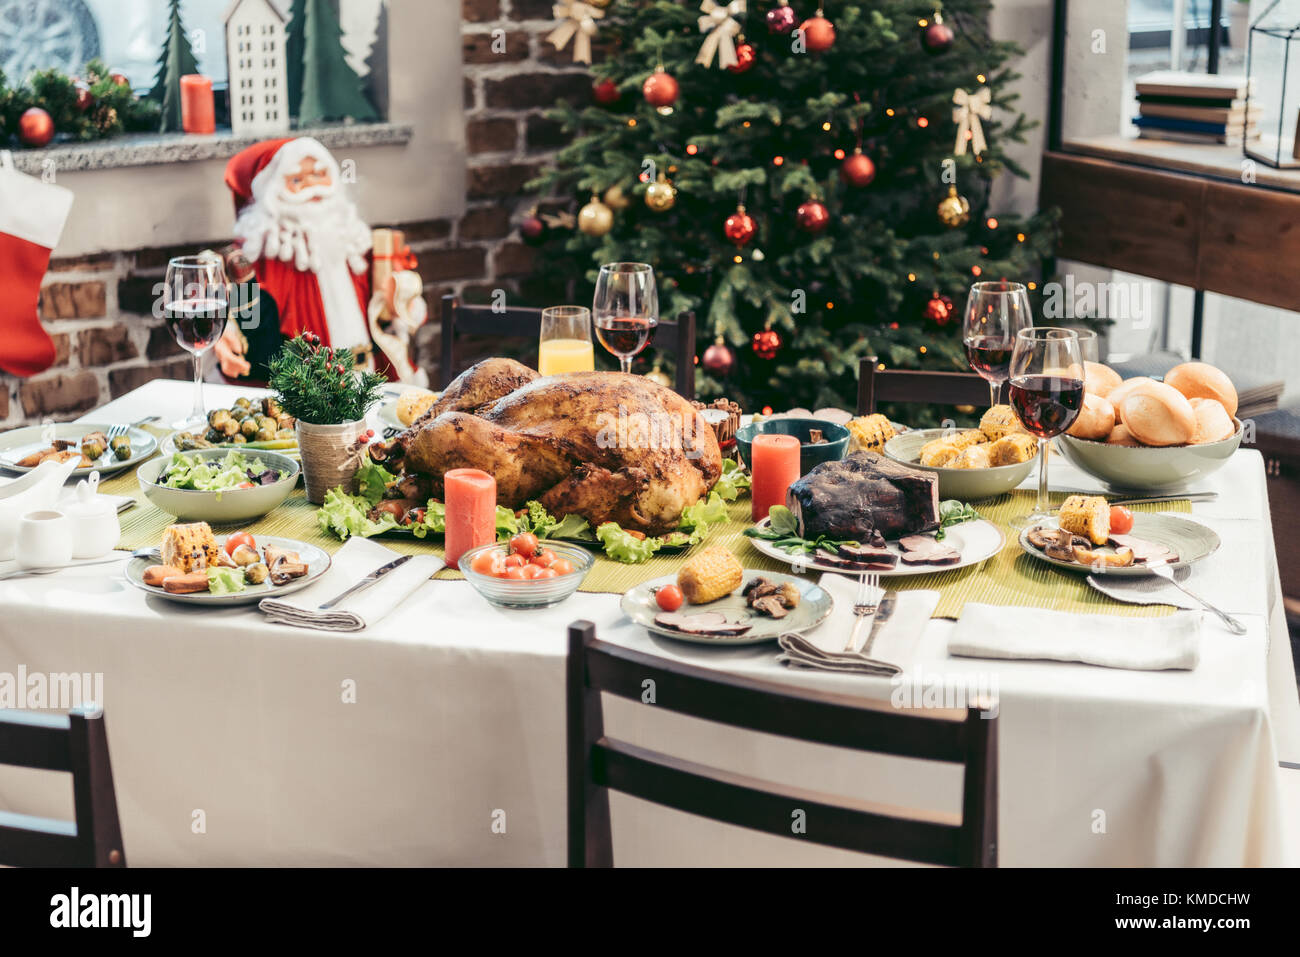 christmas table - Stock Image